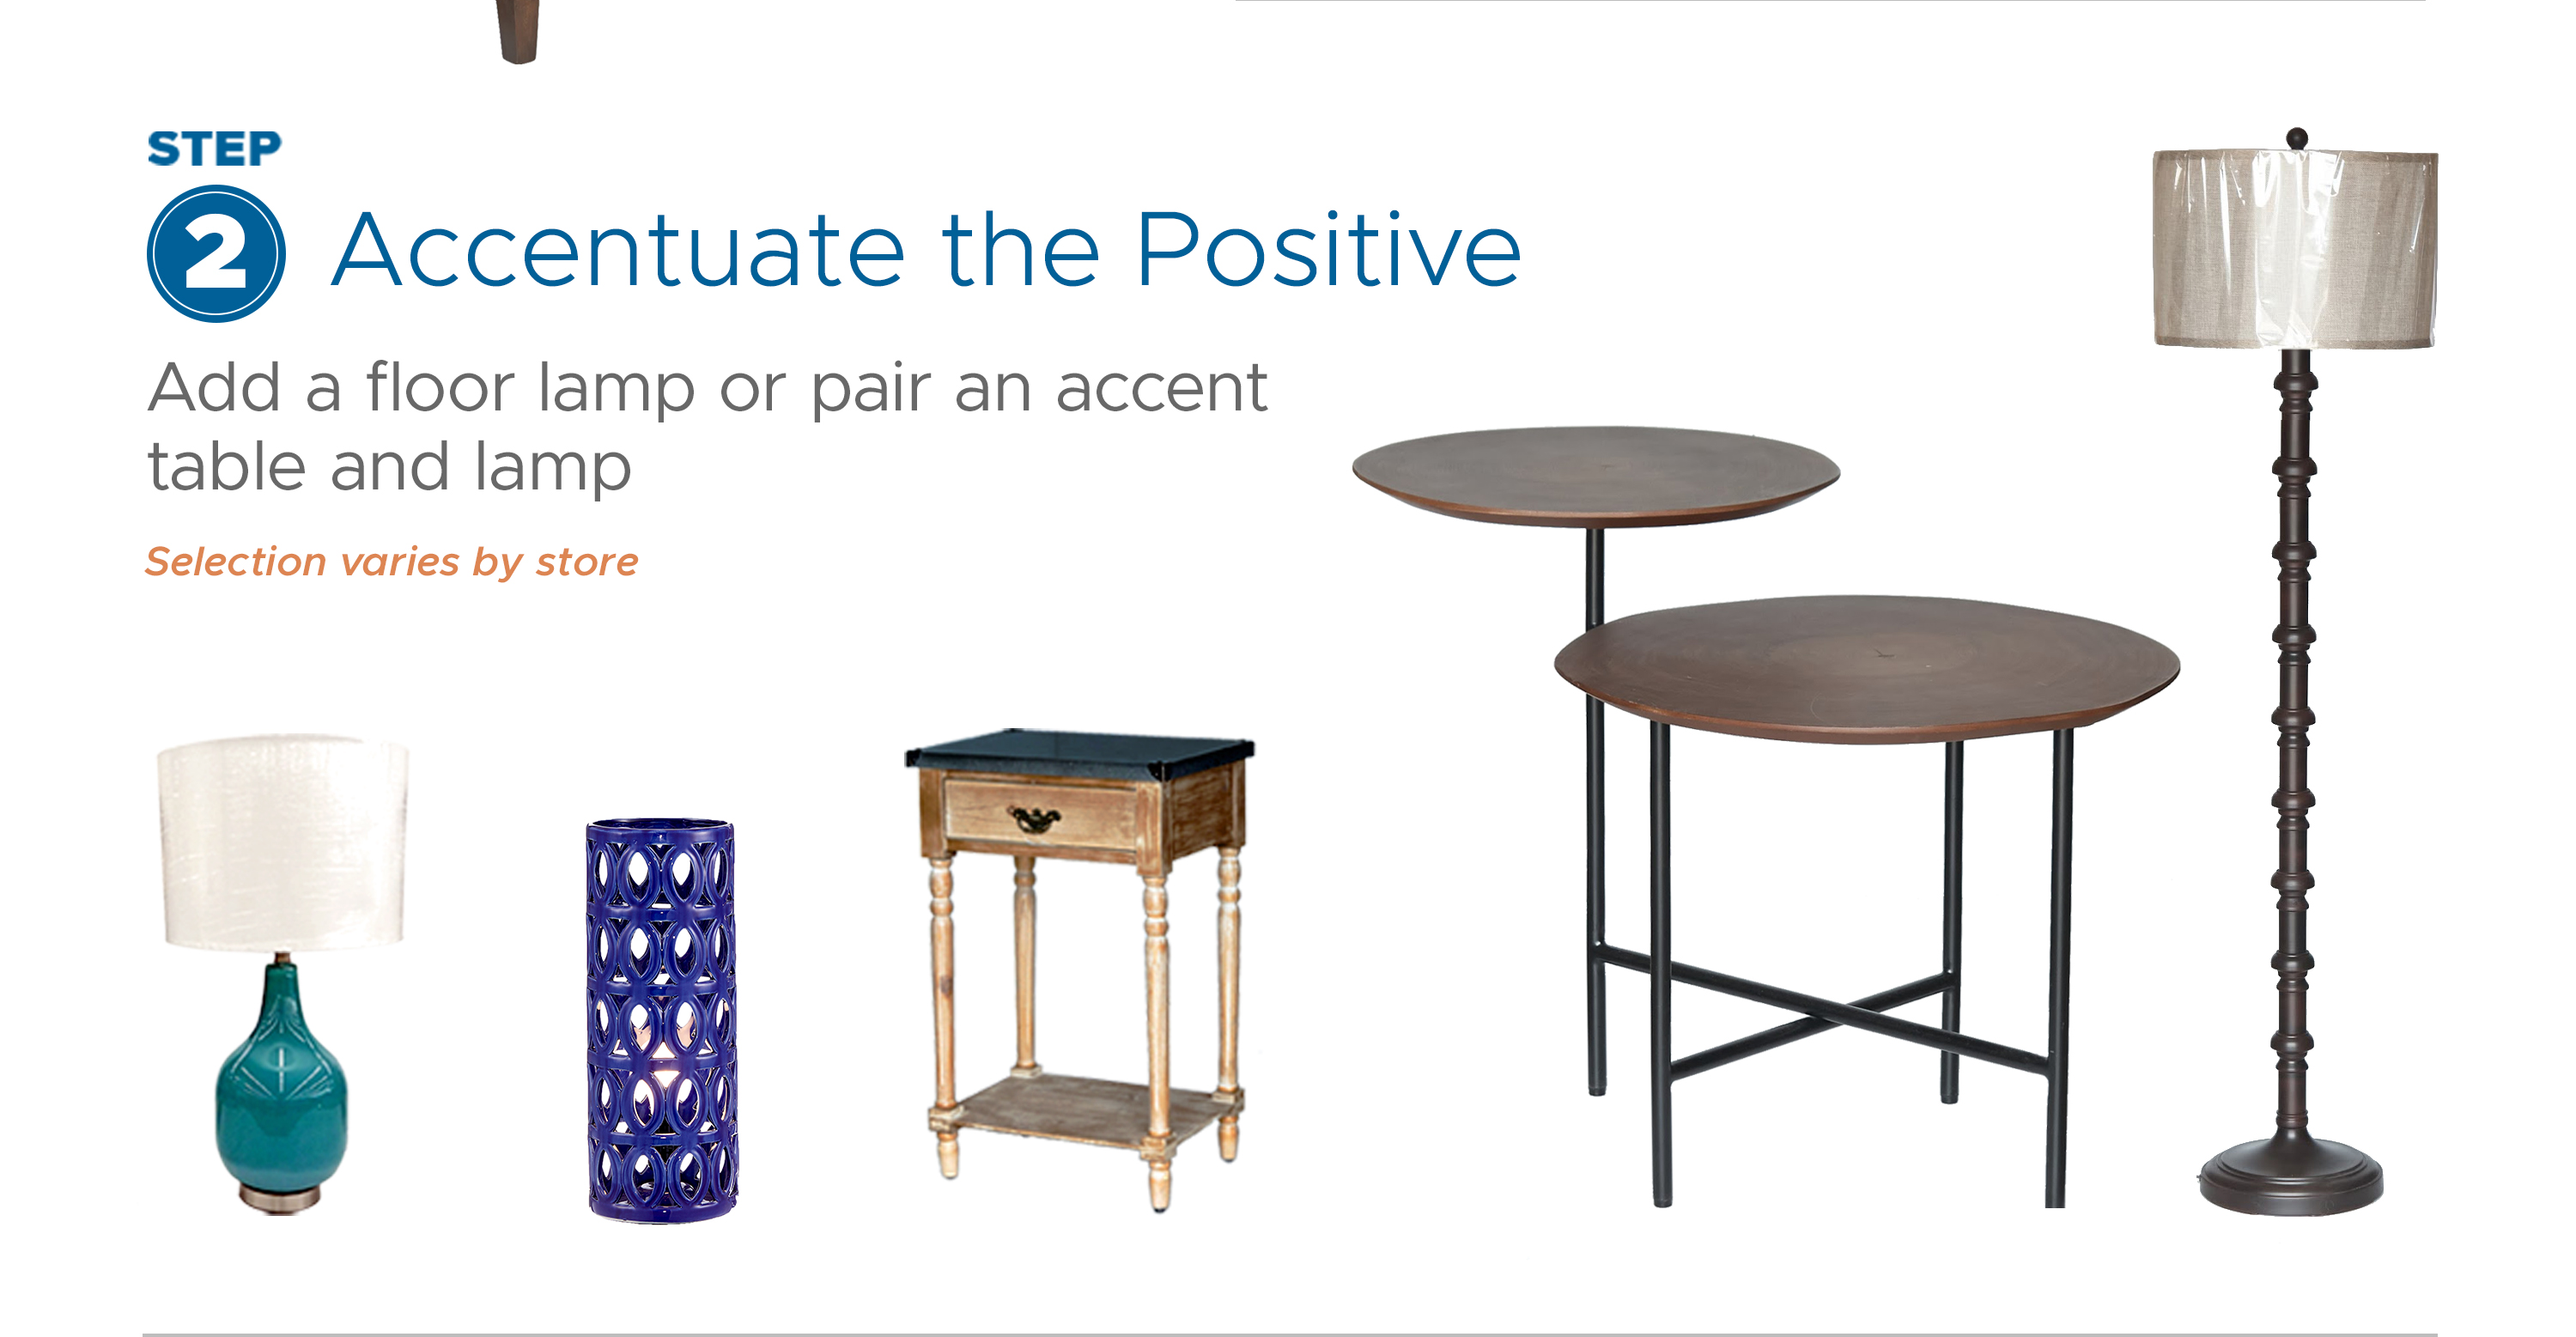 Step 2: Accentuate the Positive - Add a floor lamp or pair an accent table and lamp